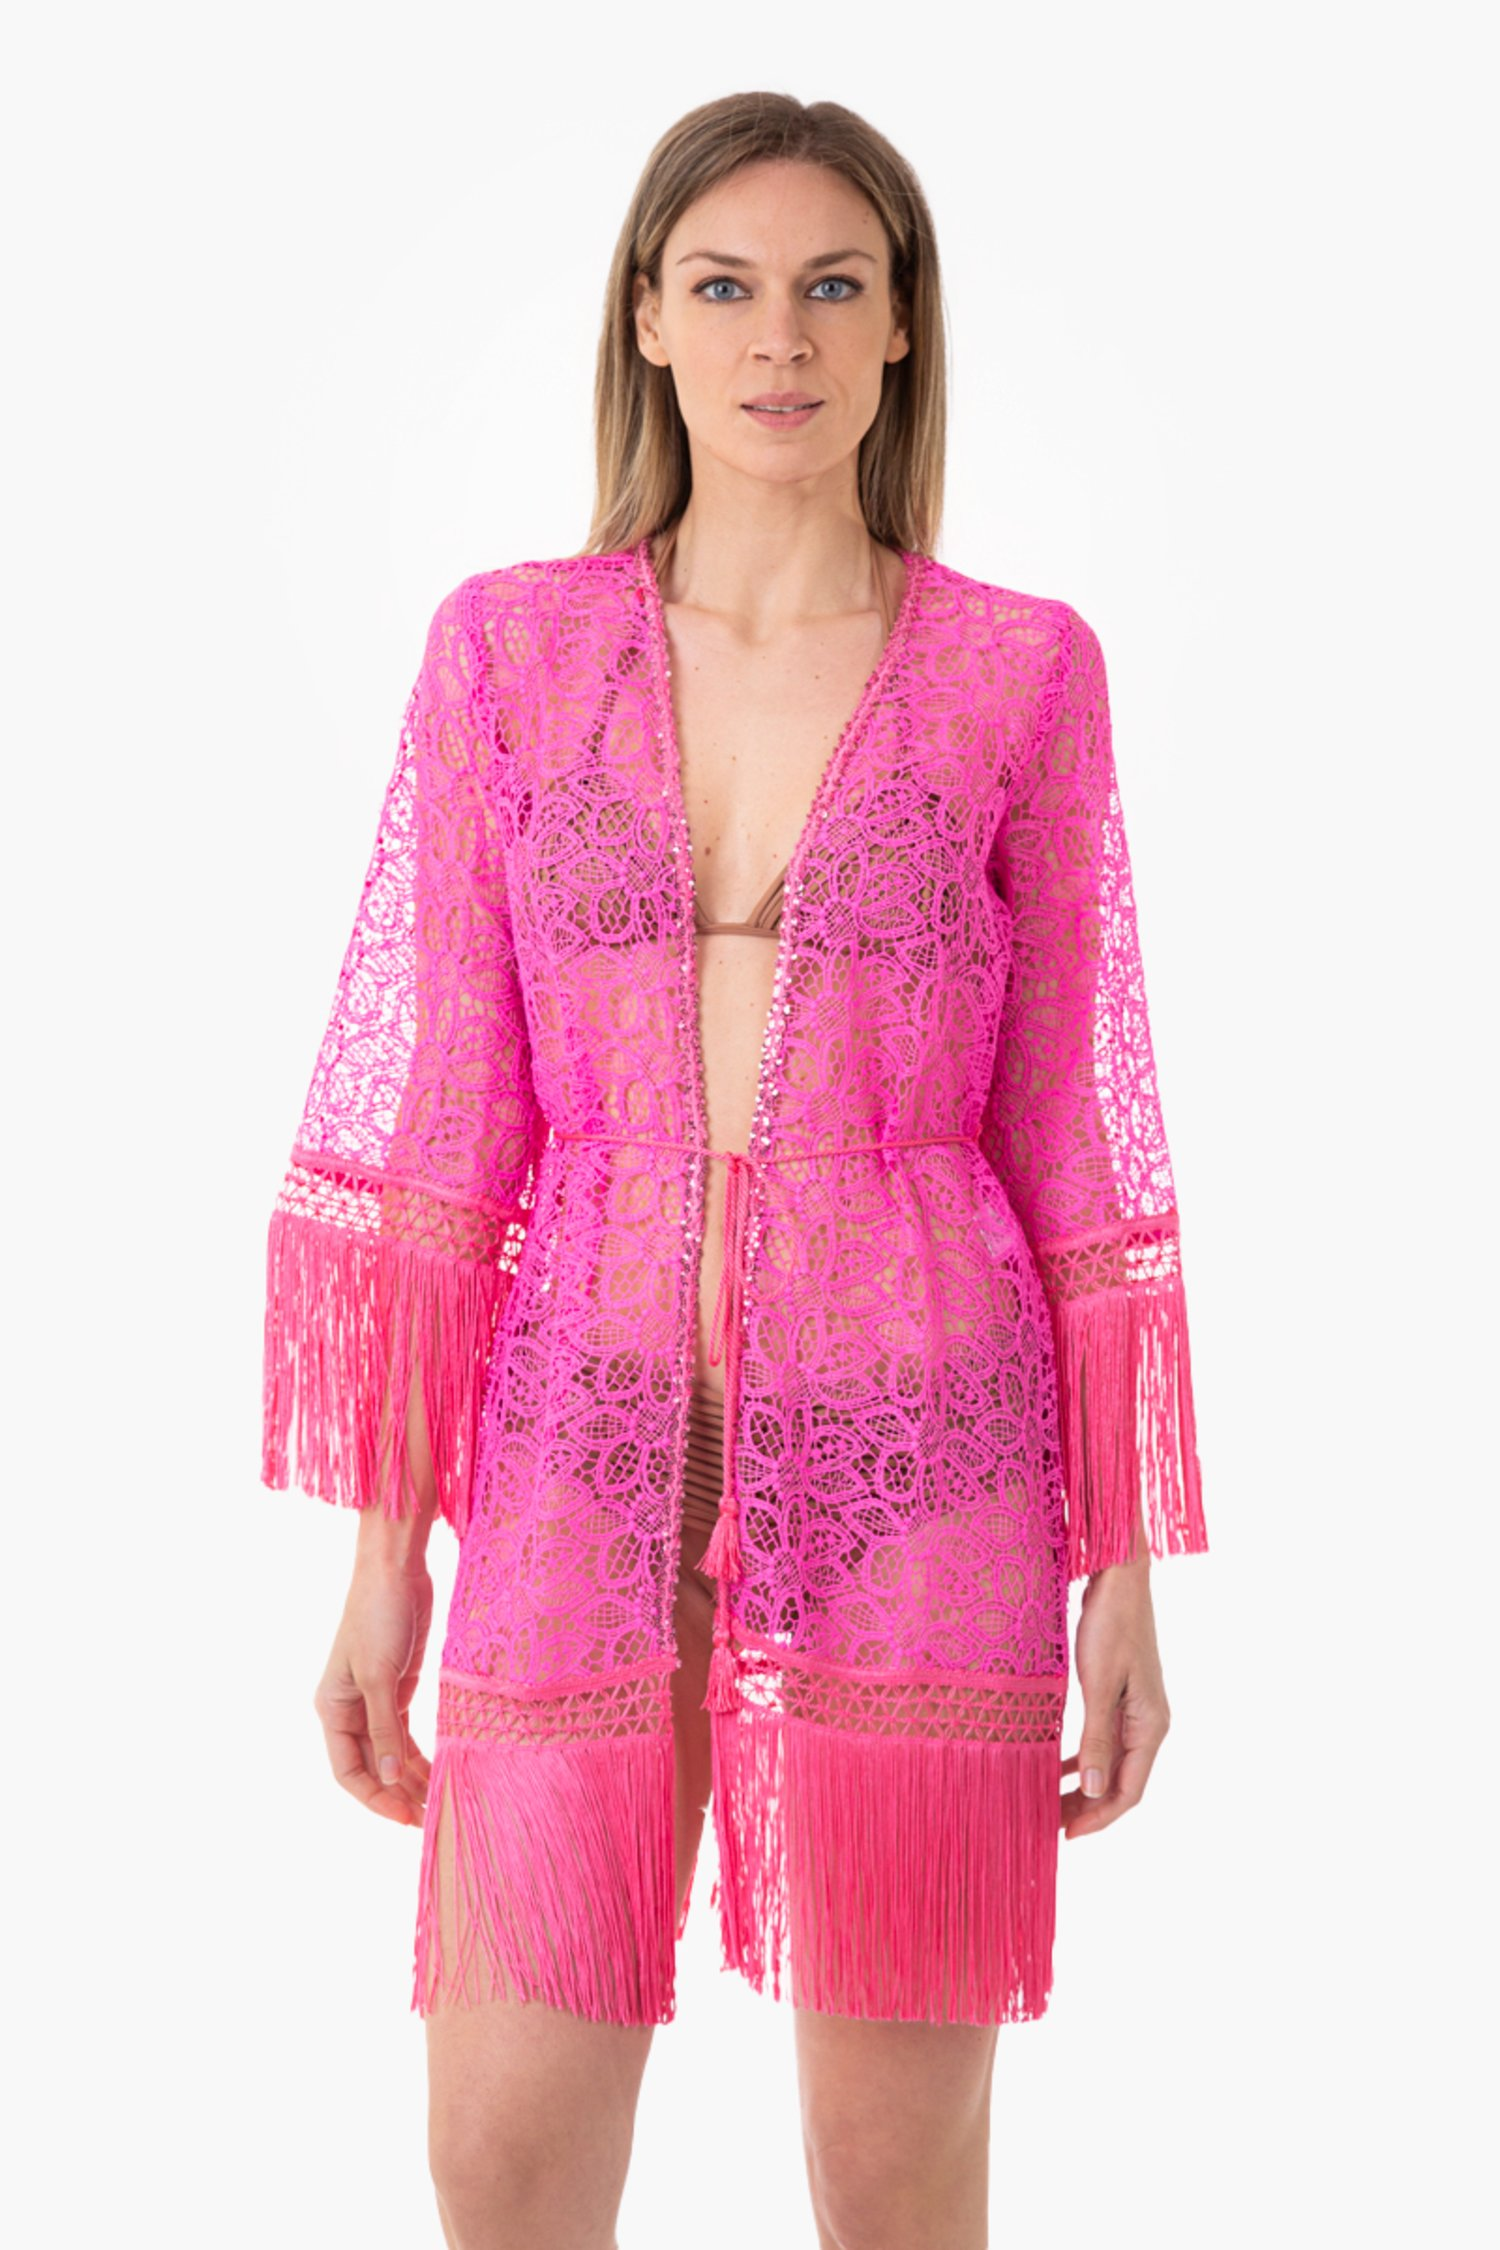 SHORT VEST IN LACE - Pizzo Macrame' Camelia